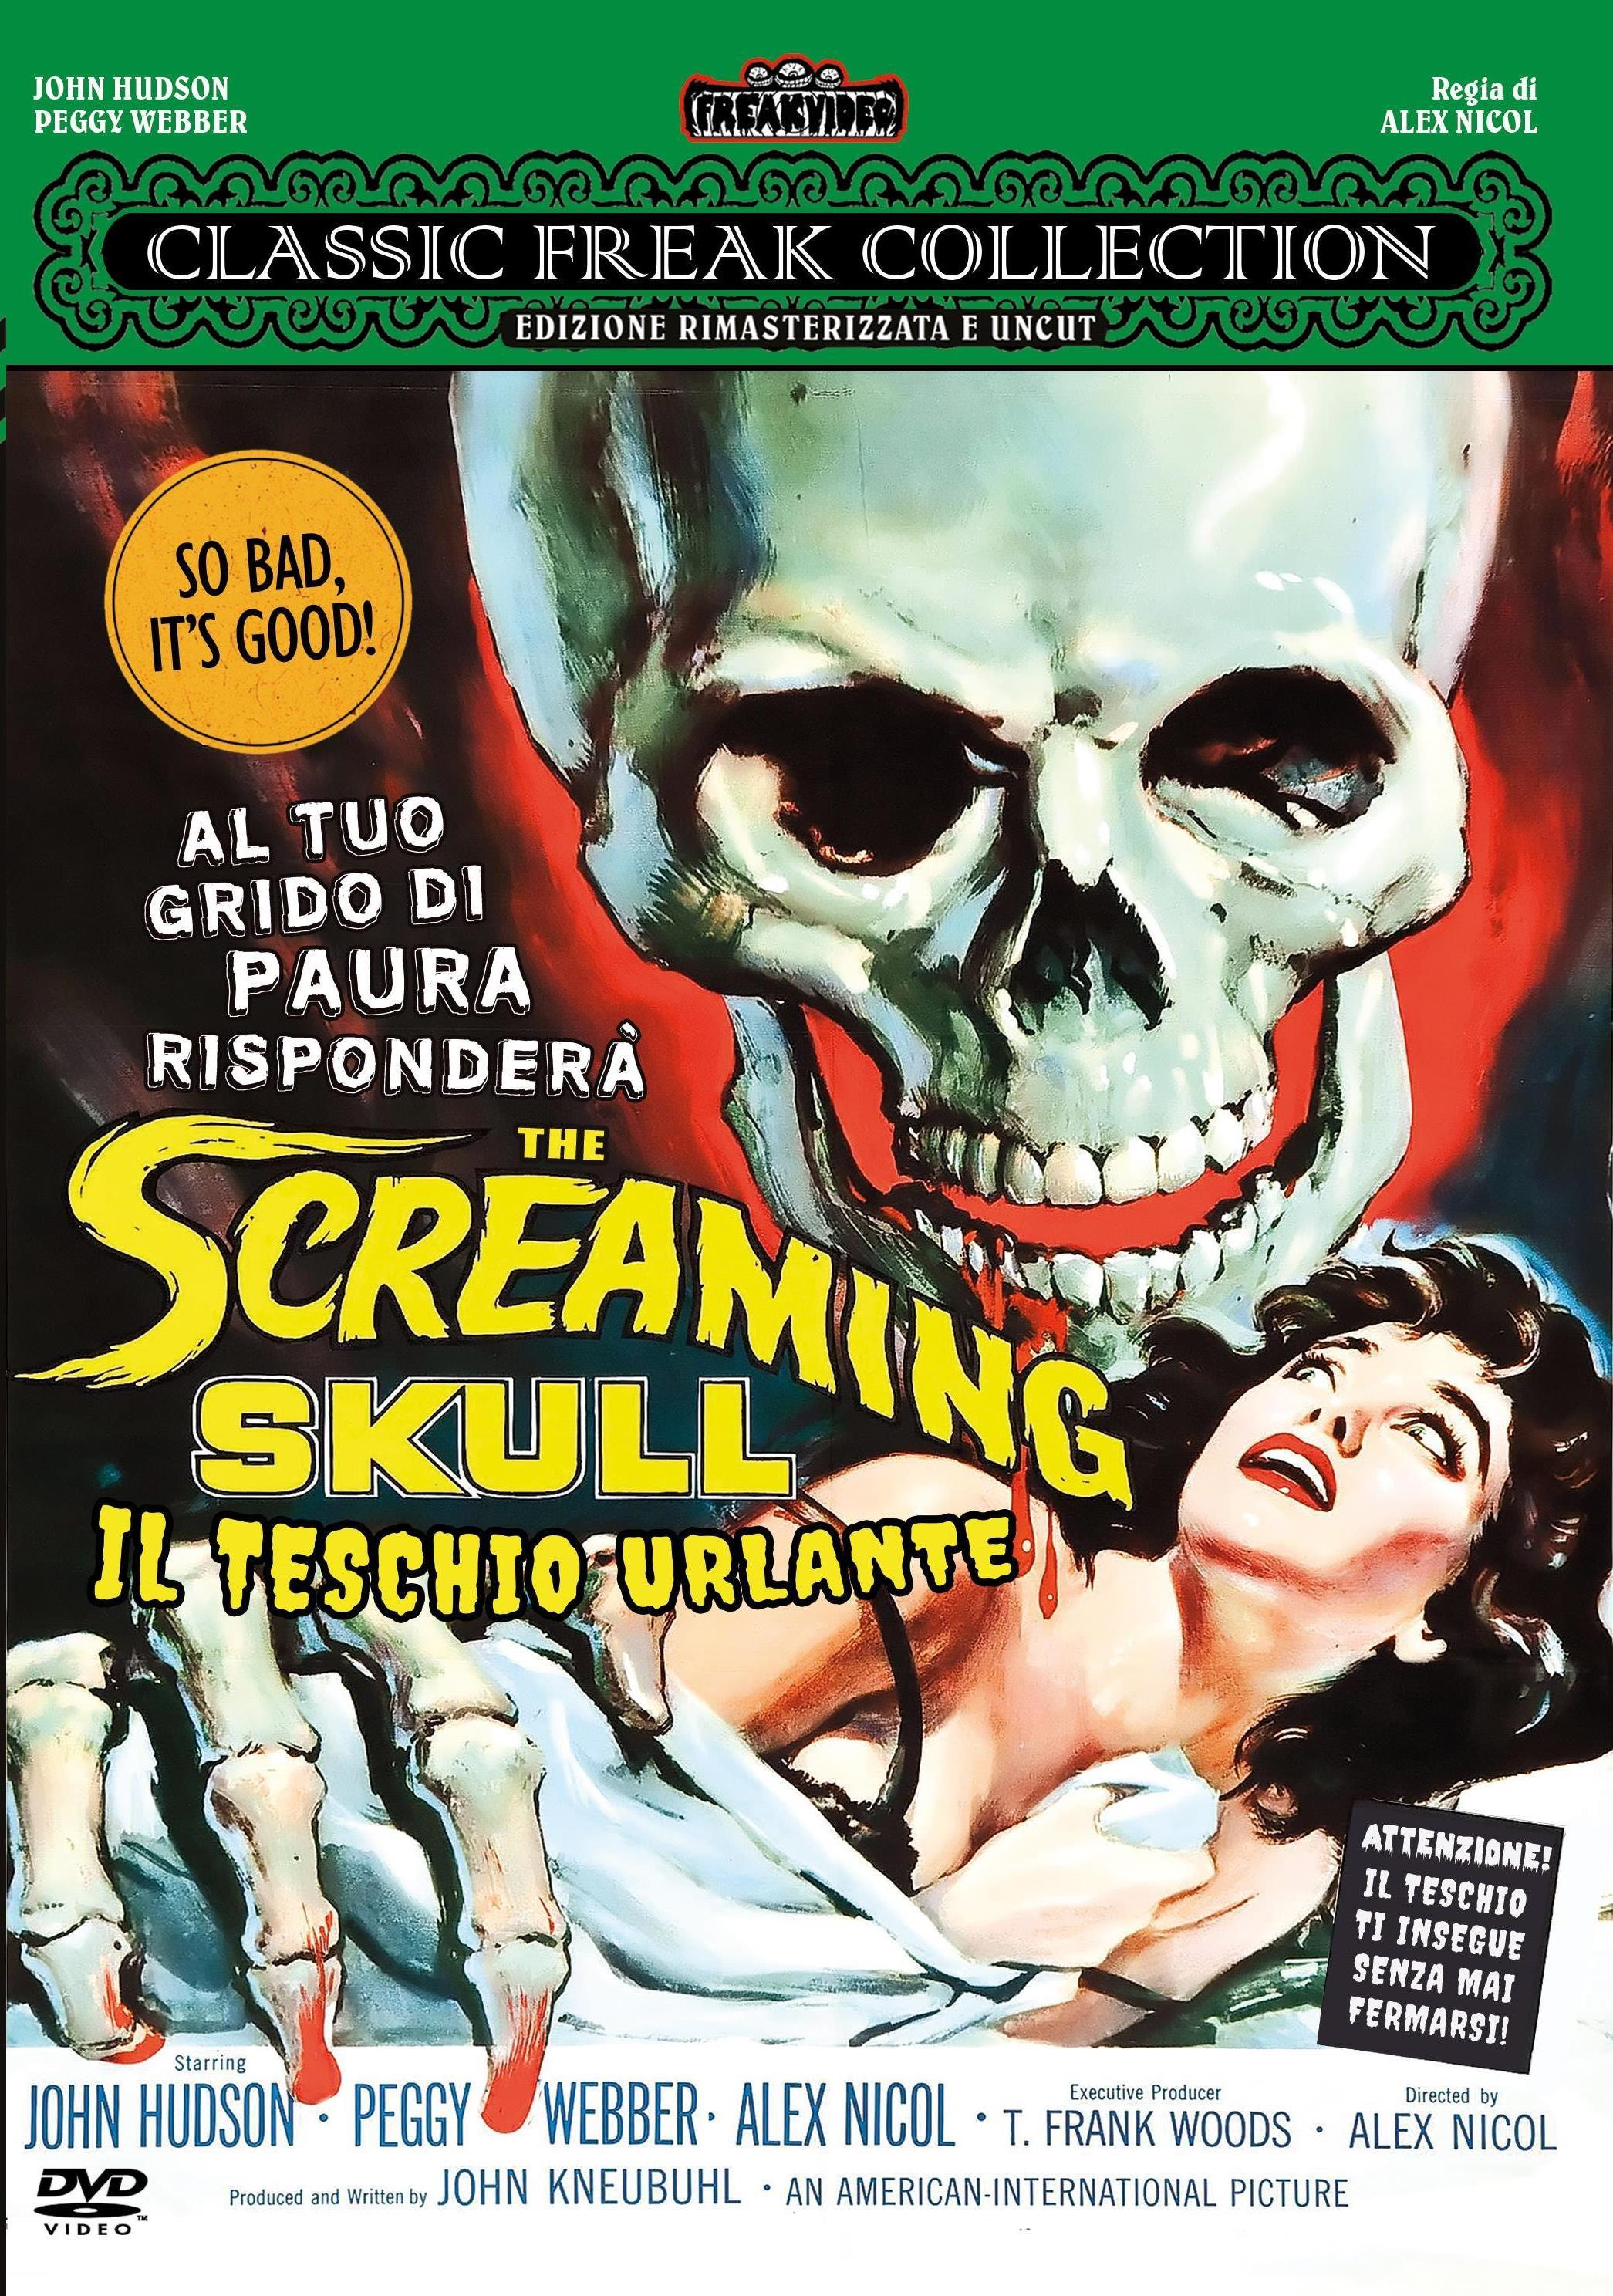 THE SCREAMING SKULL (LINGUA ORIGINALE) (DVD)